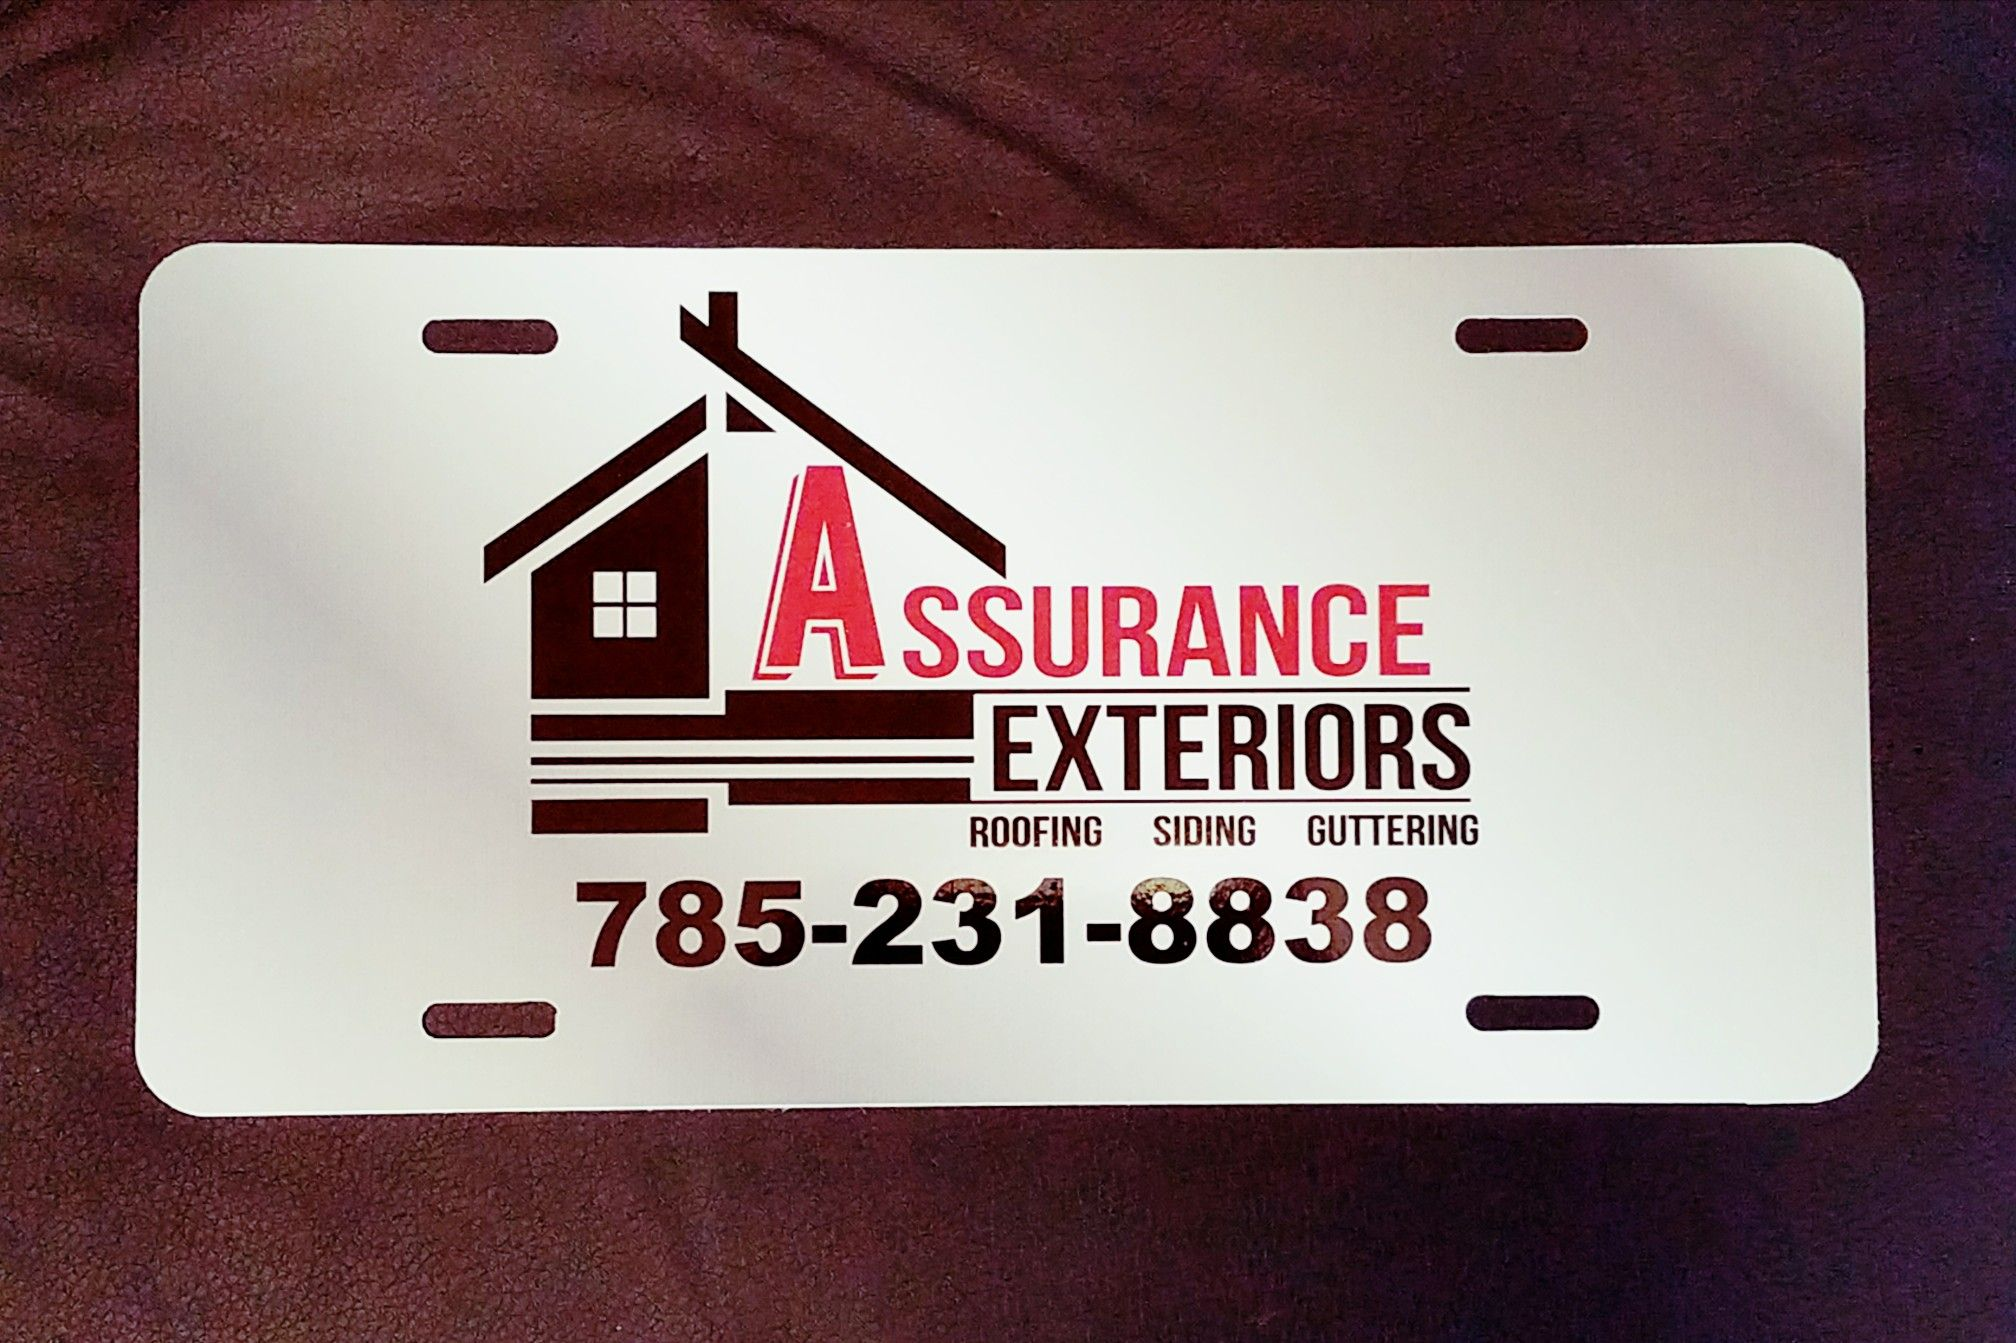 We Made These License Plates For Assurance Exteriors Knox Signs Graphics 5612 D Sw Topeka Blvd Topeka Ks 6 Monument Signs Channel Letters Banner Stands